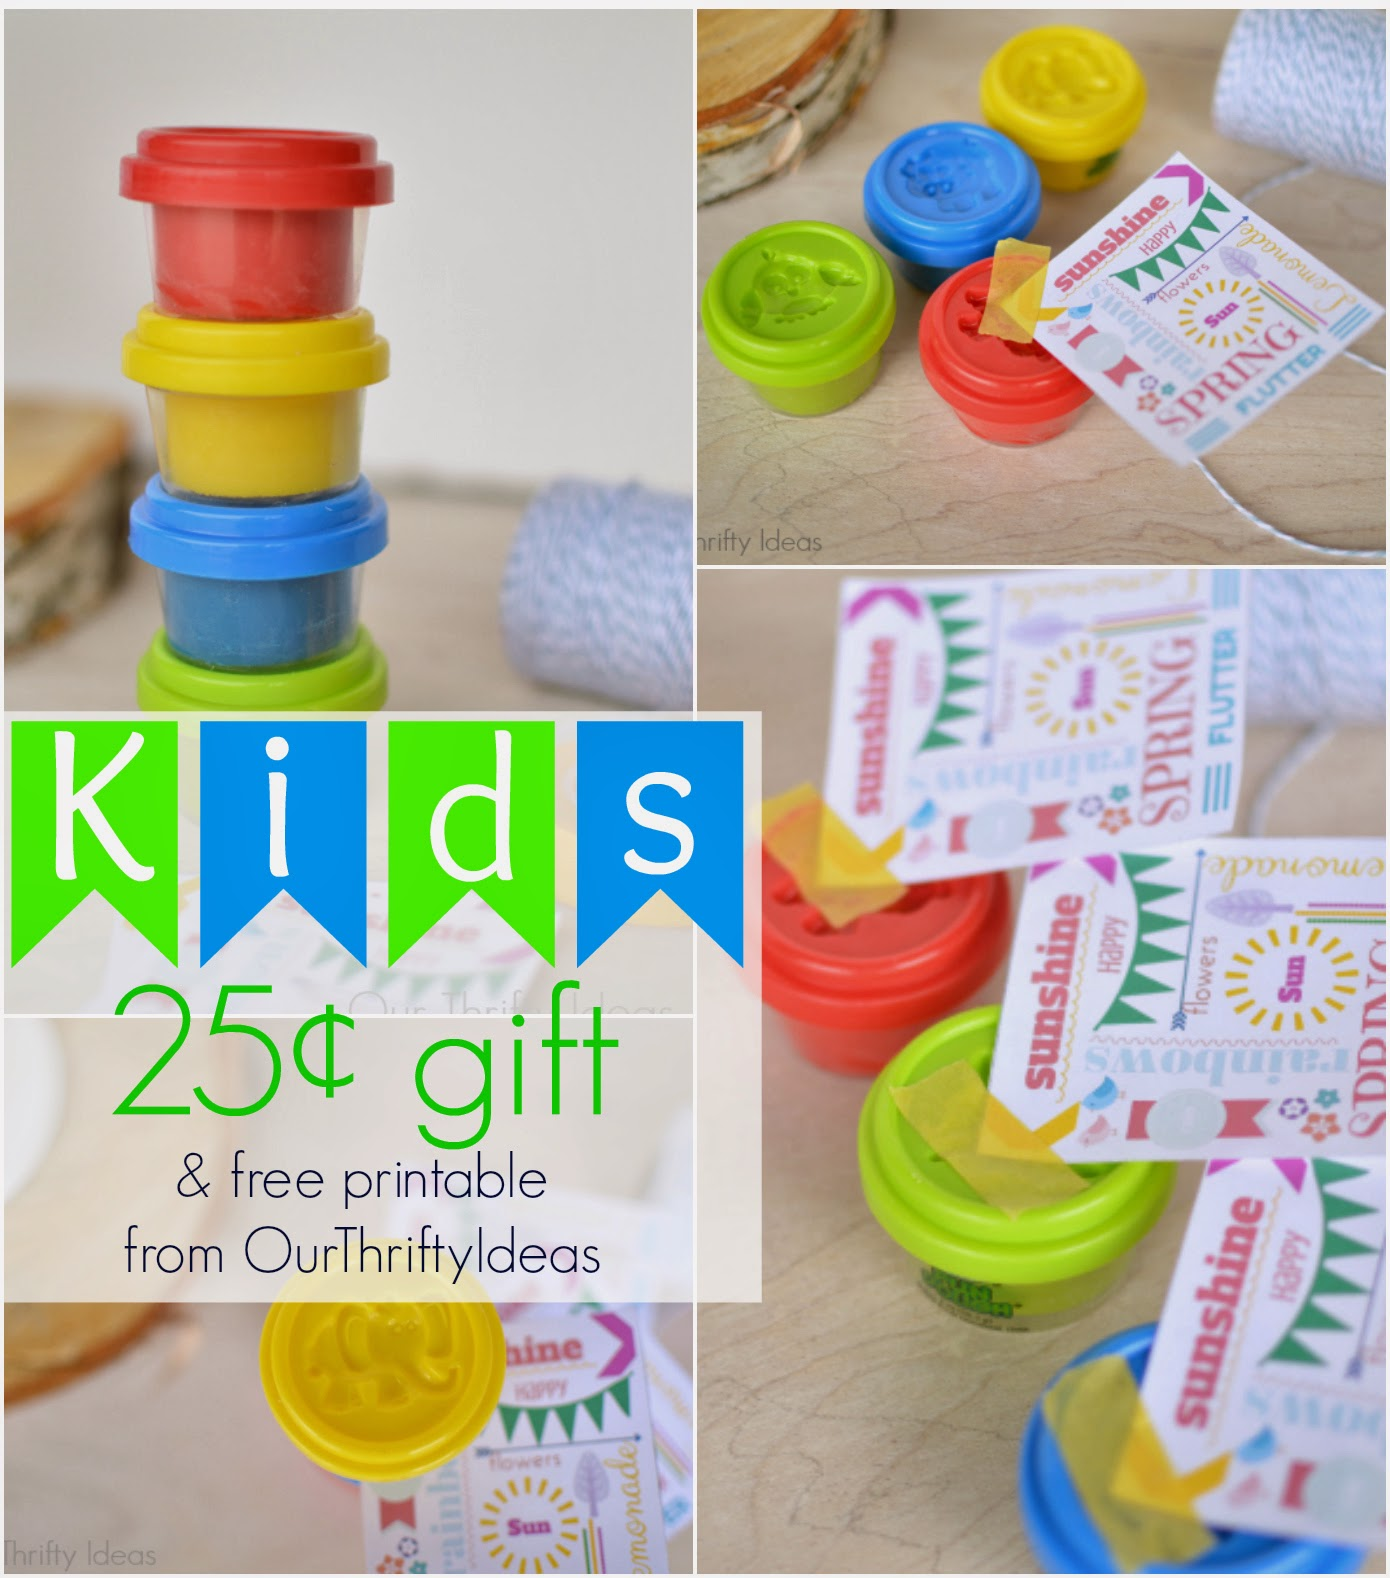 kid's gift and free printable